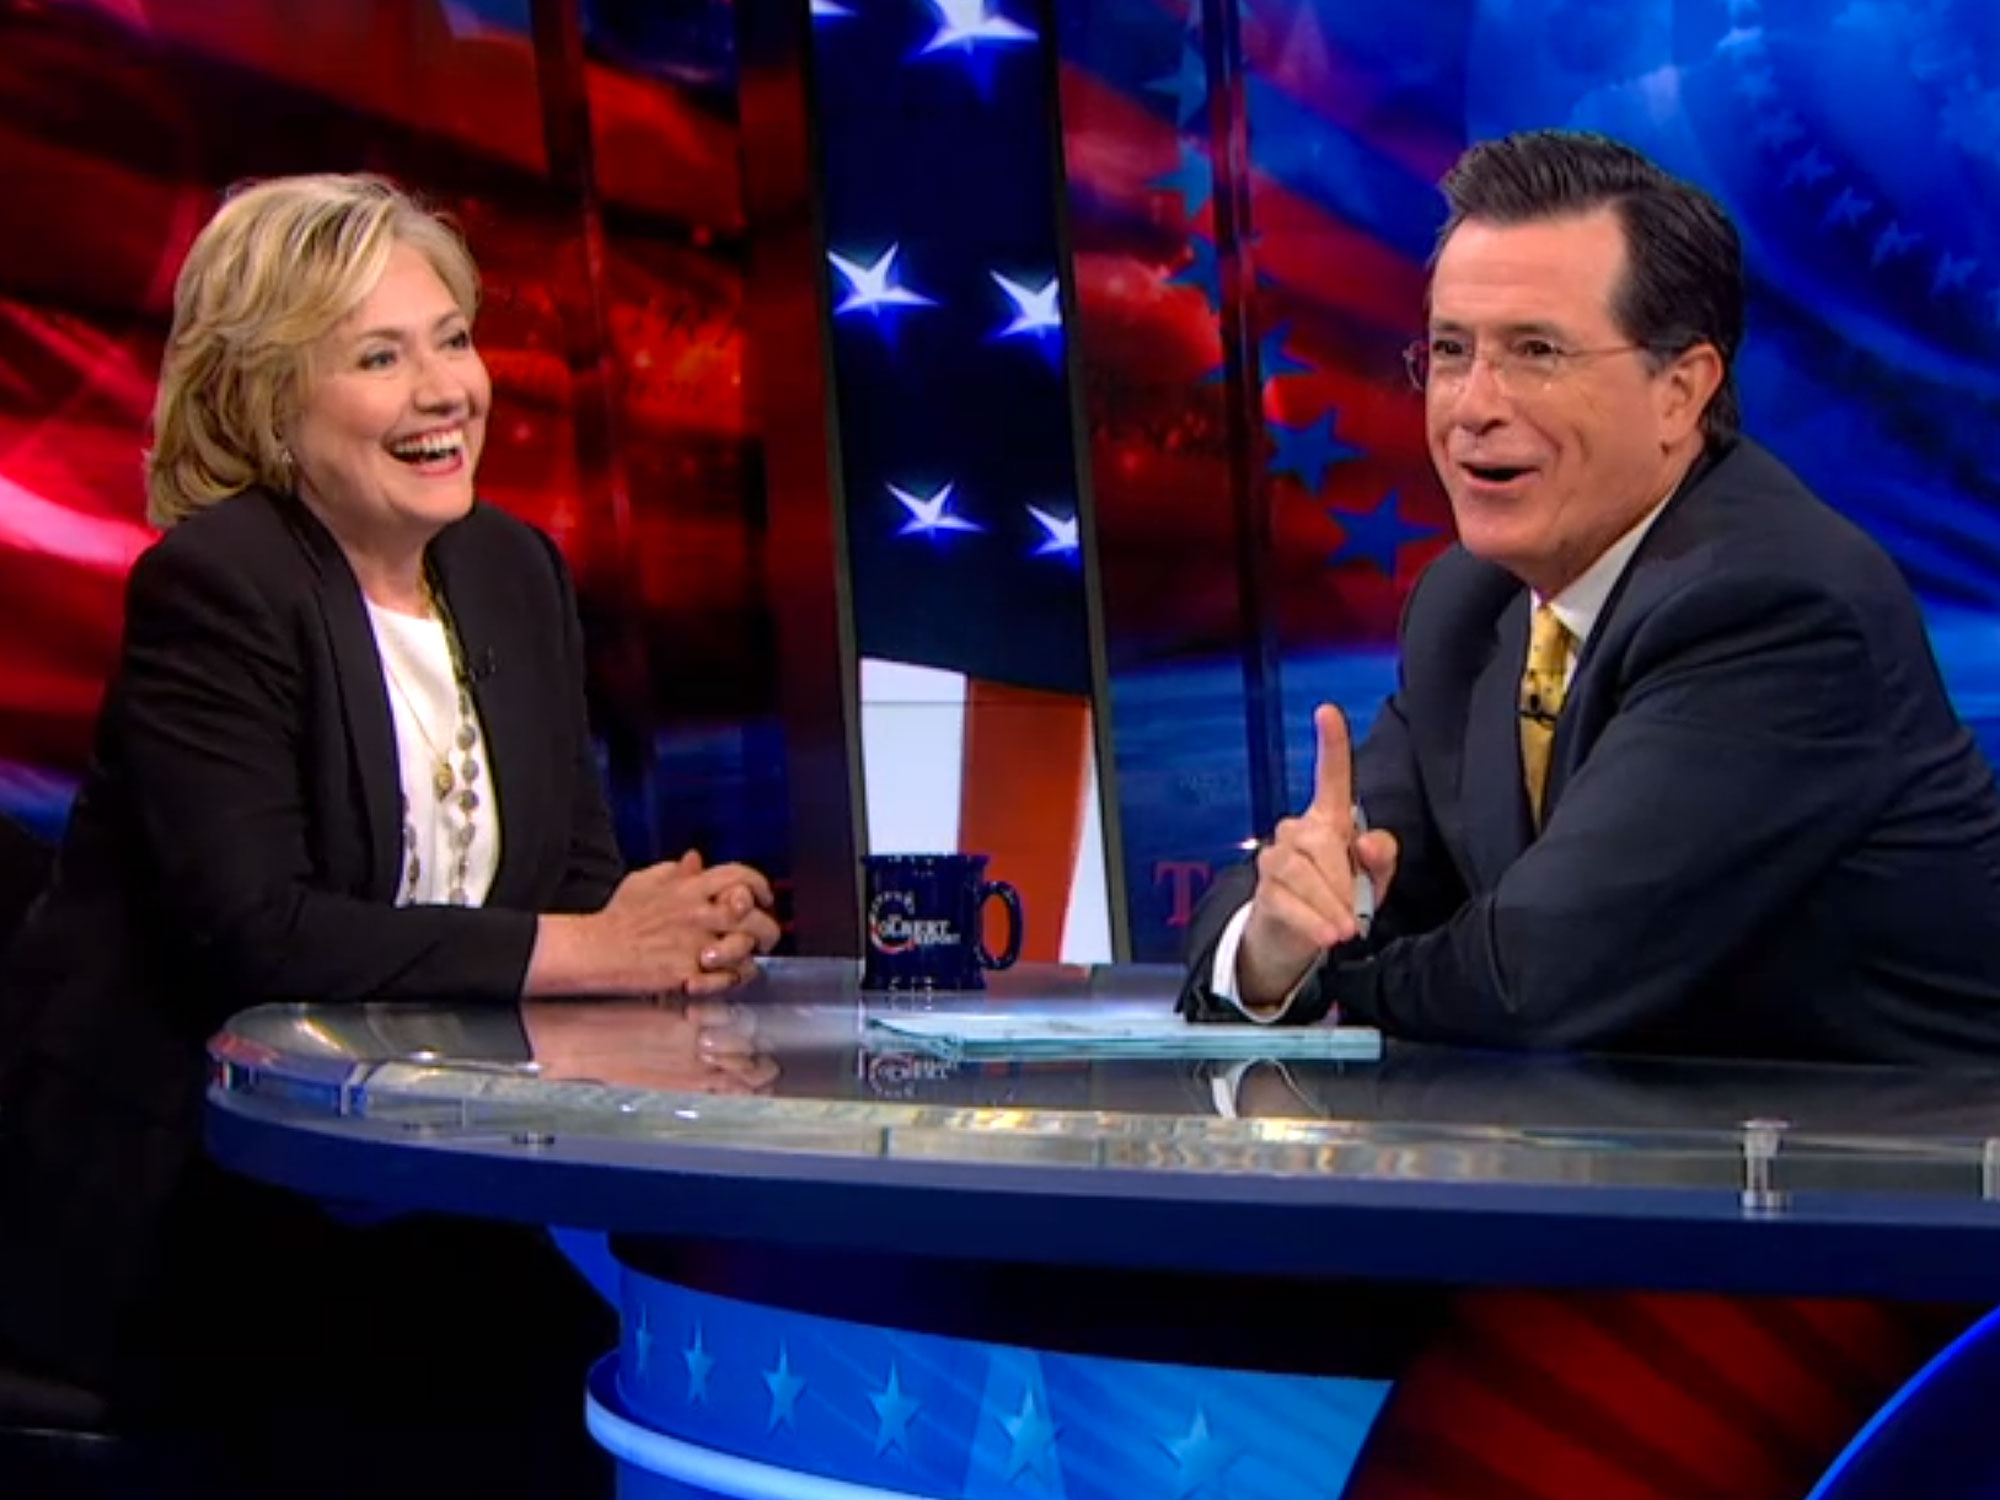 Hillary Clinton drops in on the Colbert Report.